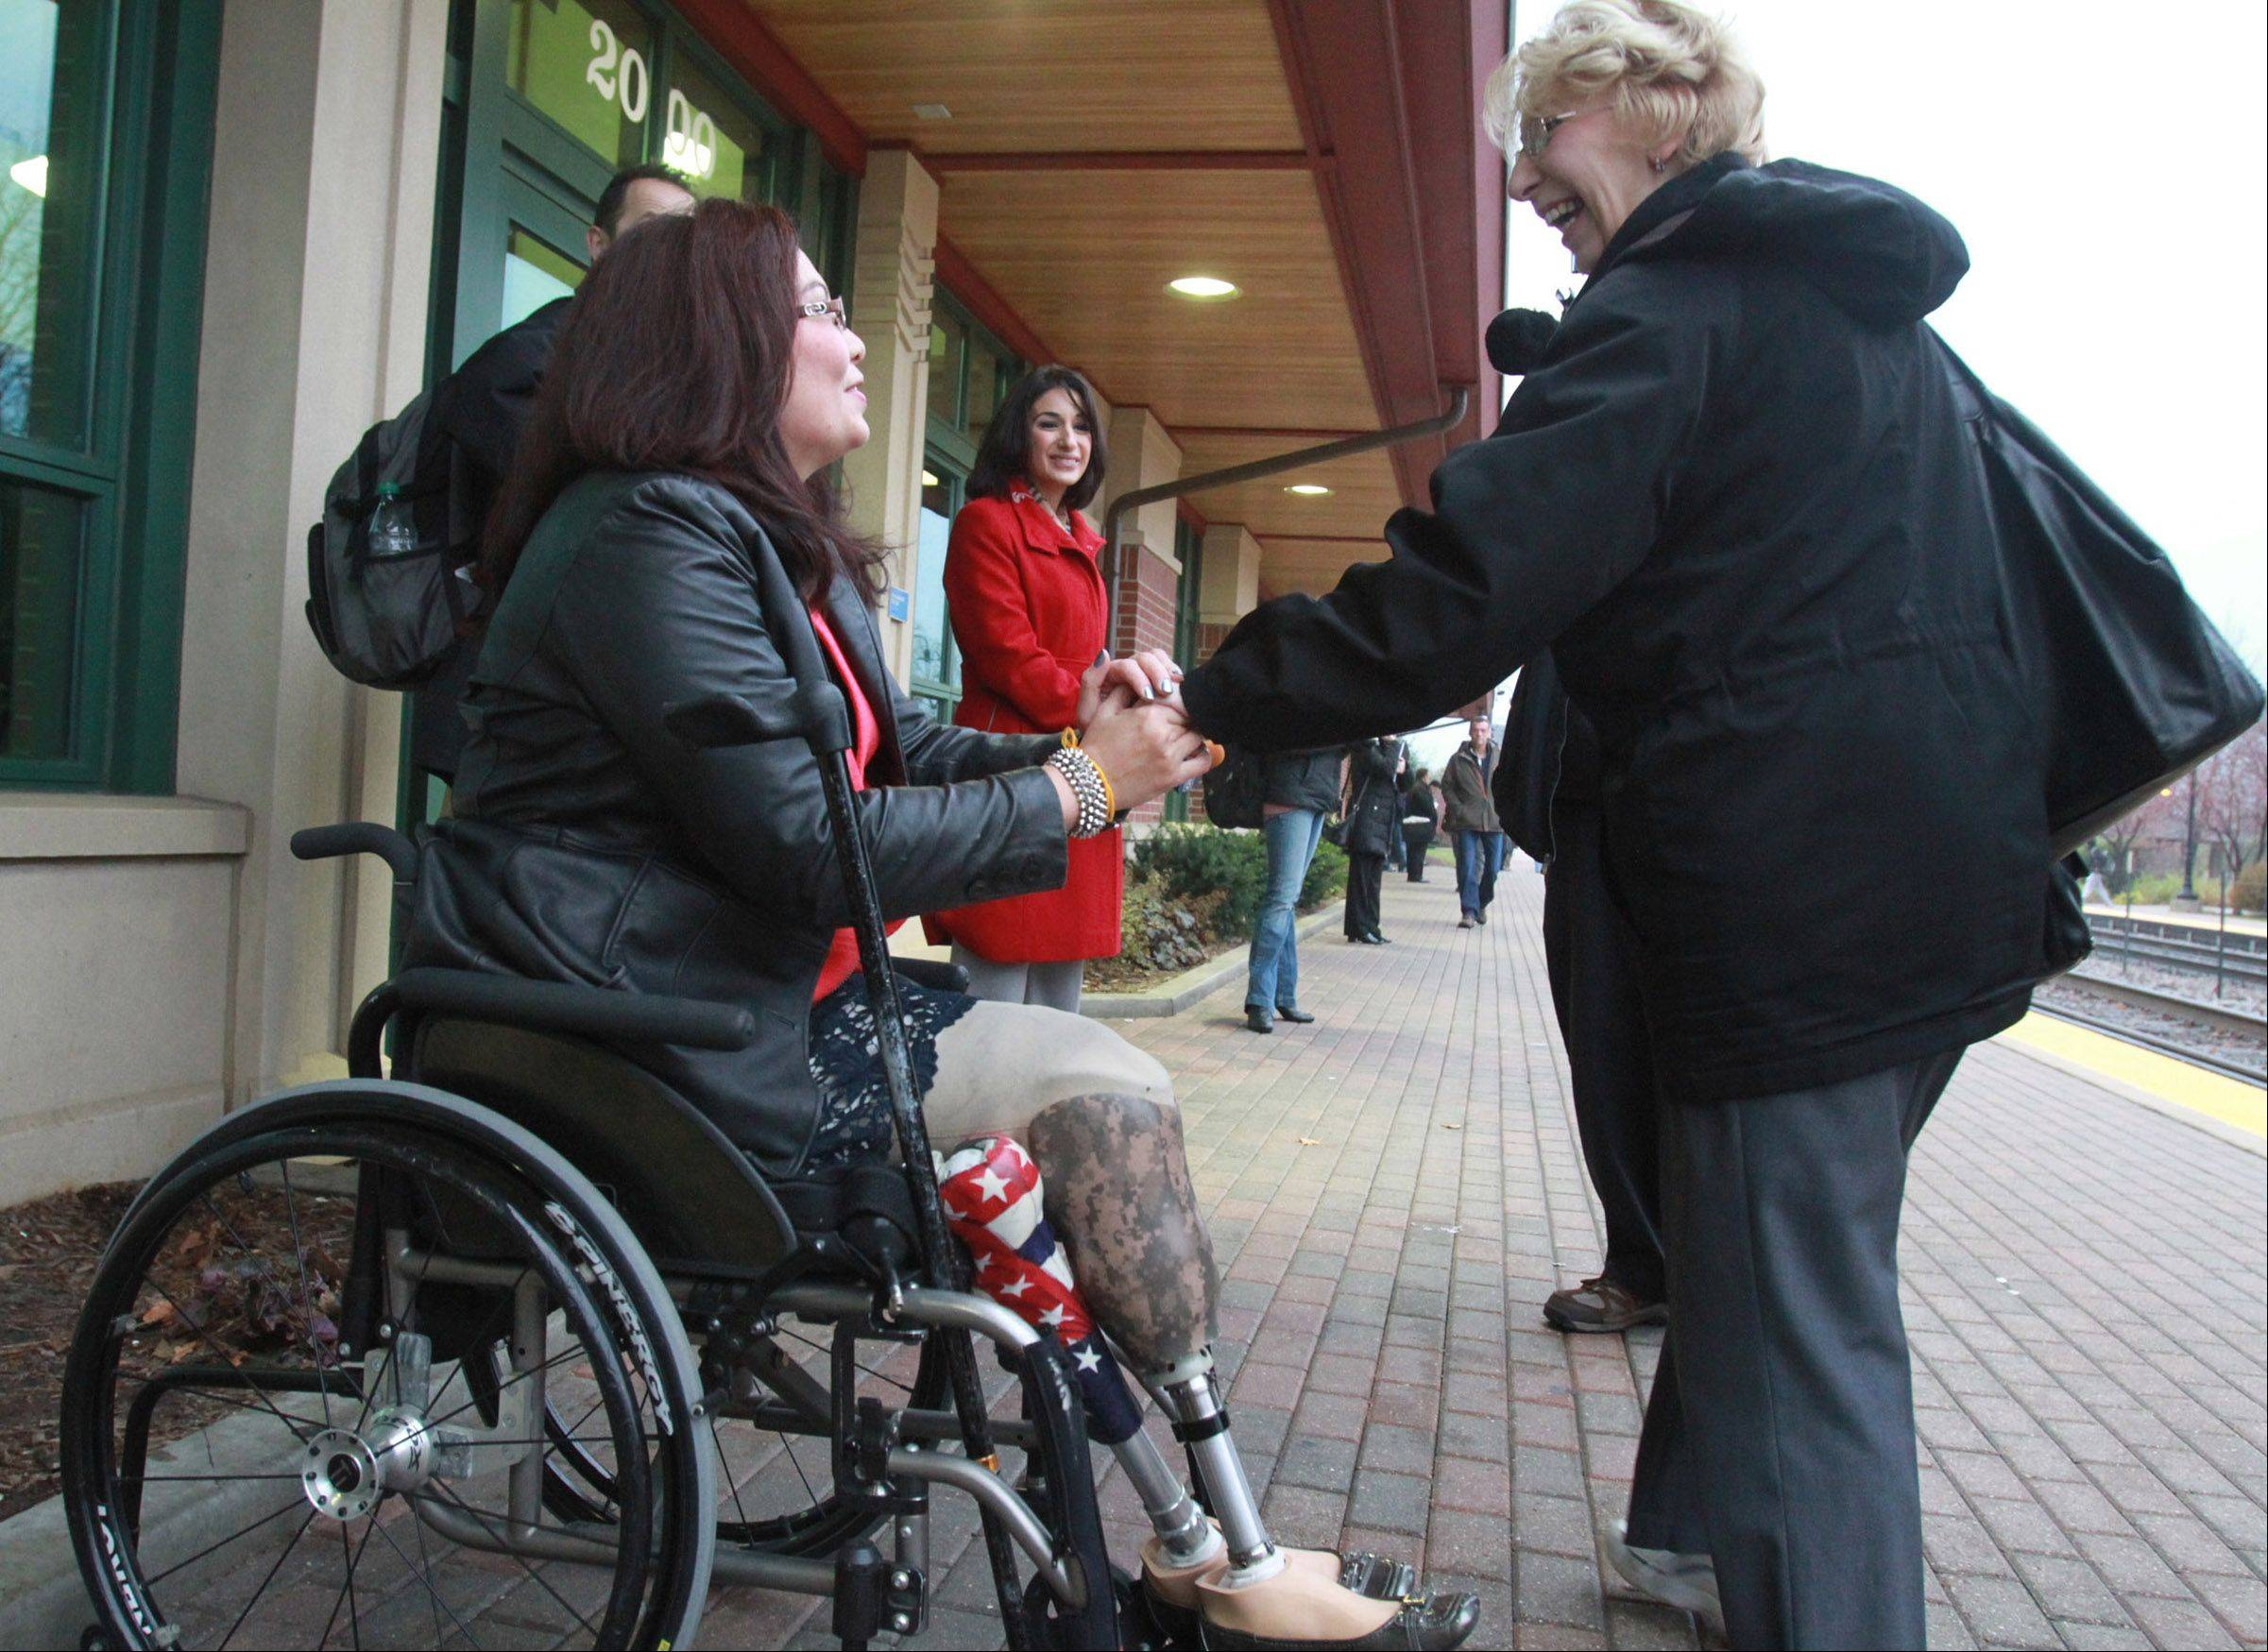 Tammy Duckworth thanks Kathy RePak of Hoffman Estates for her support at the Metra station Wednesday in Schaumburg. Duckworth beat U.S. Rep. Joe Walsh to win election to Congress in the 8th District.